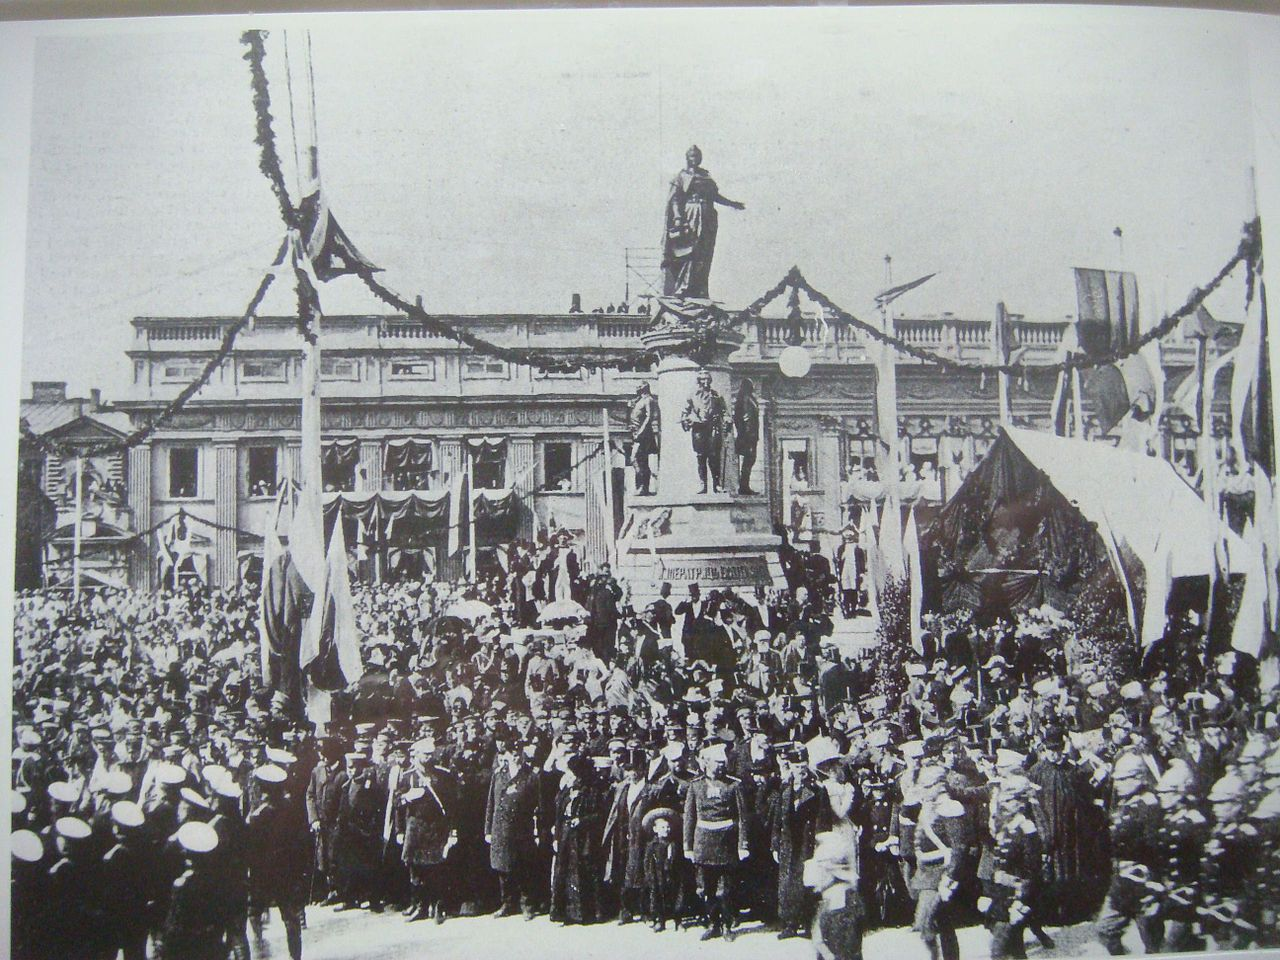 1280px-Monument_to_Catherina_the_Great_grand_opening_1900_Odessa